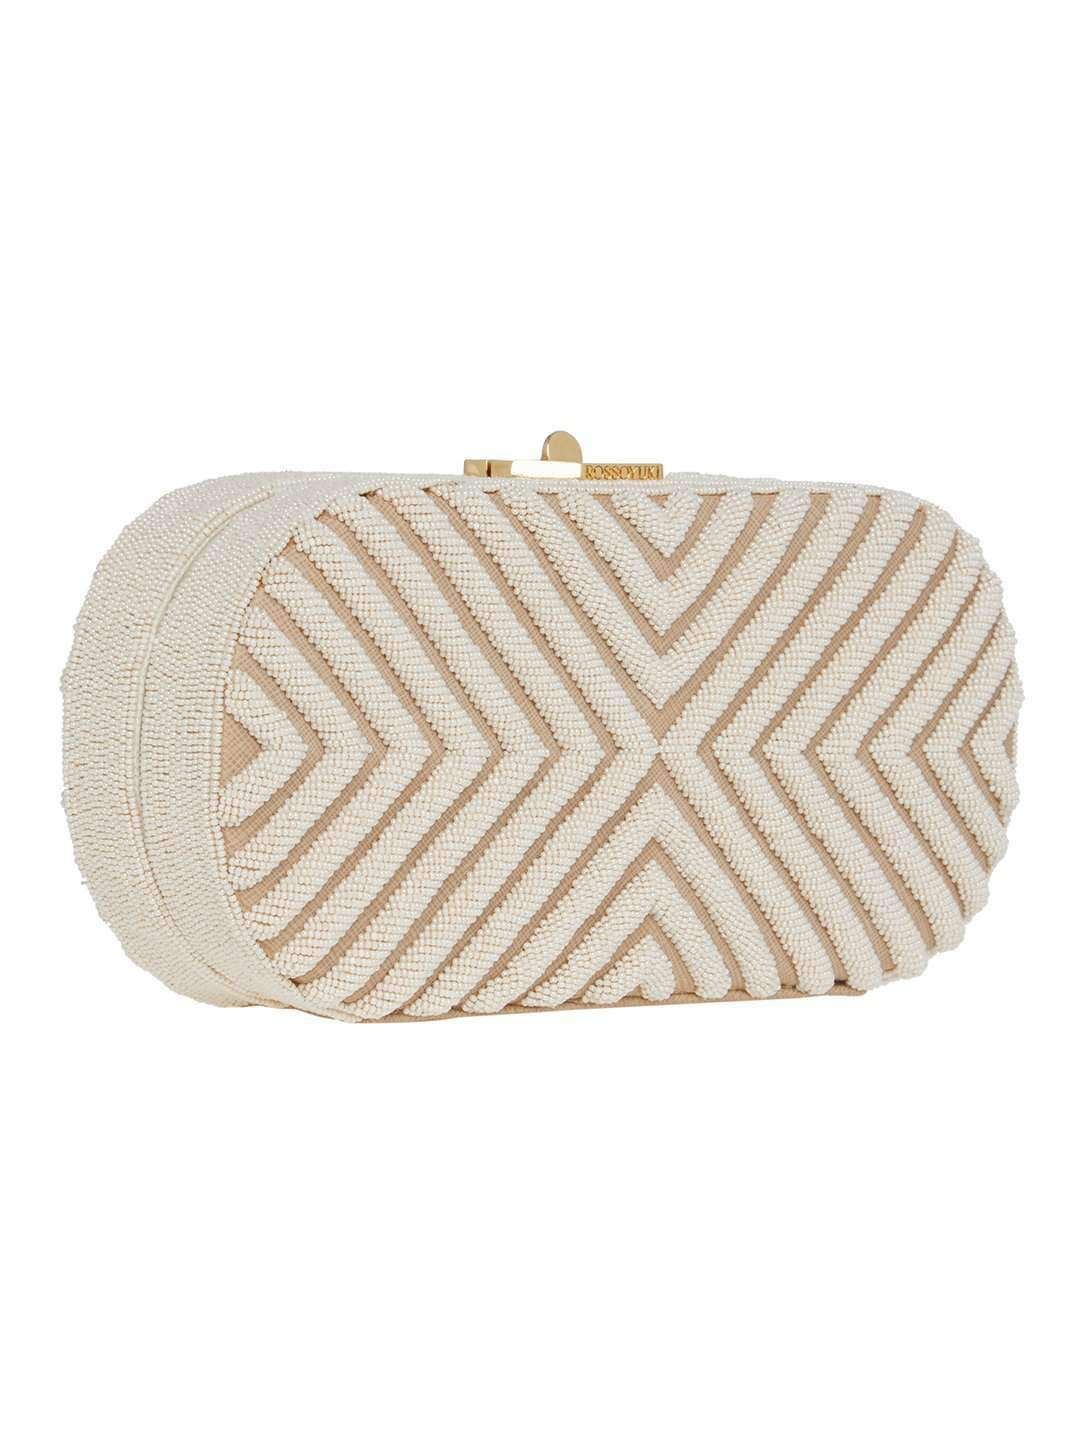 LAURIE IVORY WHITE CLUTCH BAG - ROSSOYUKI - Handbags